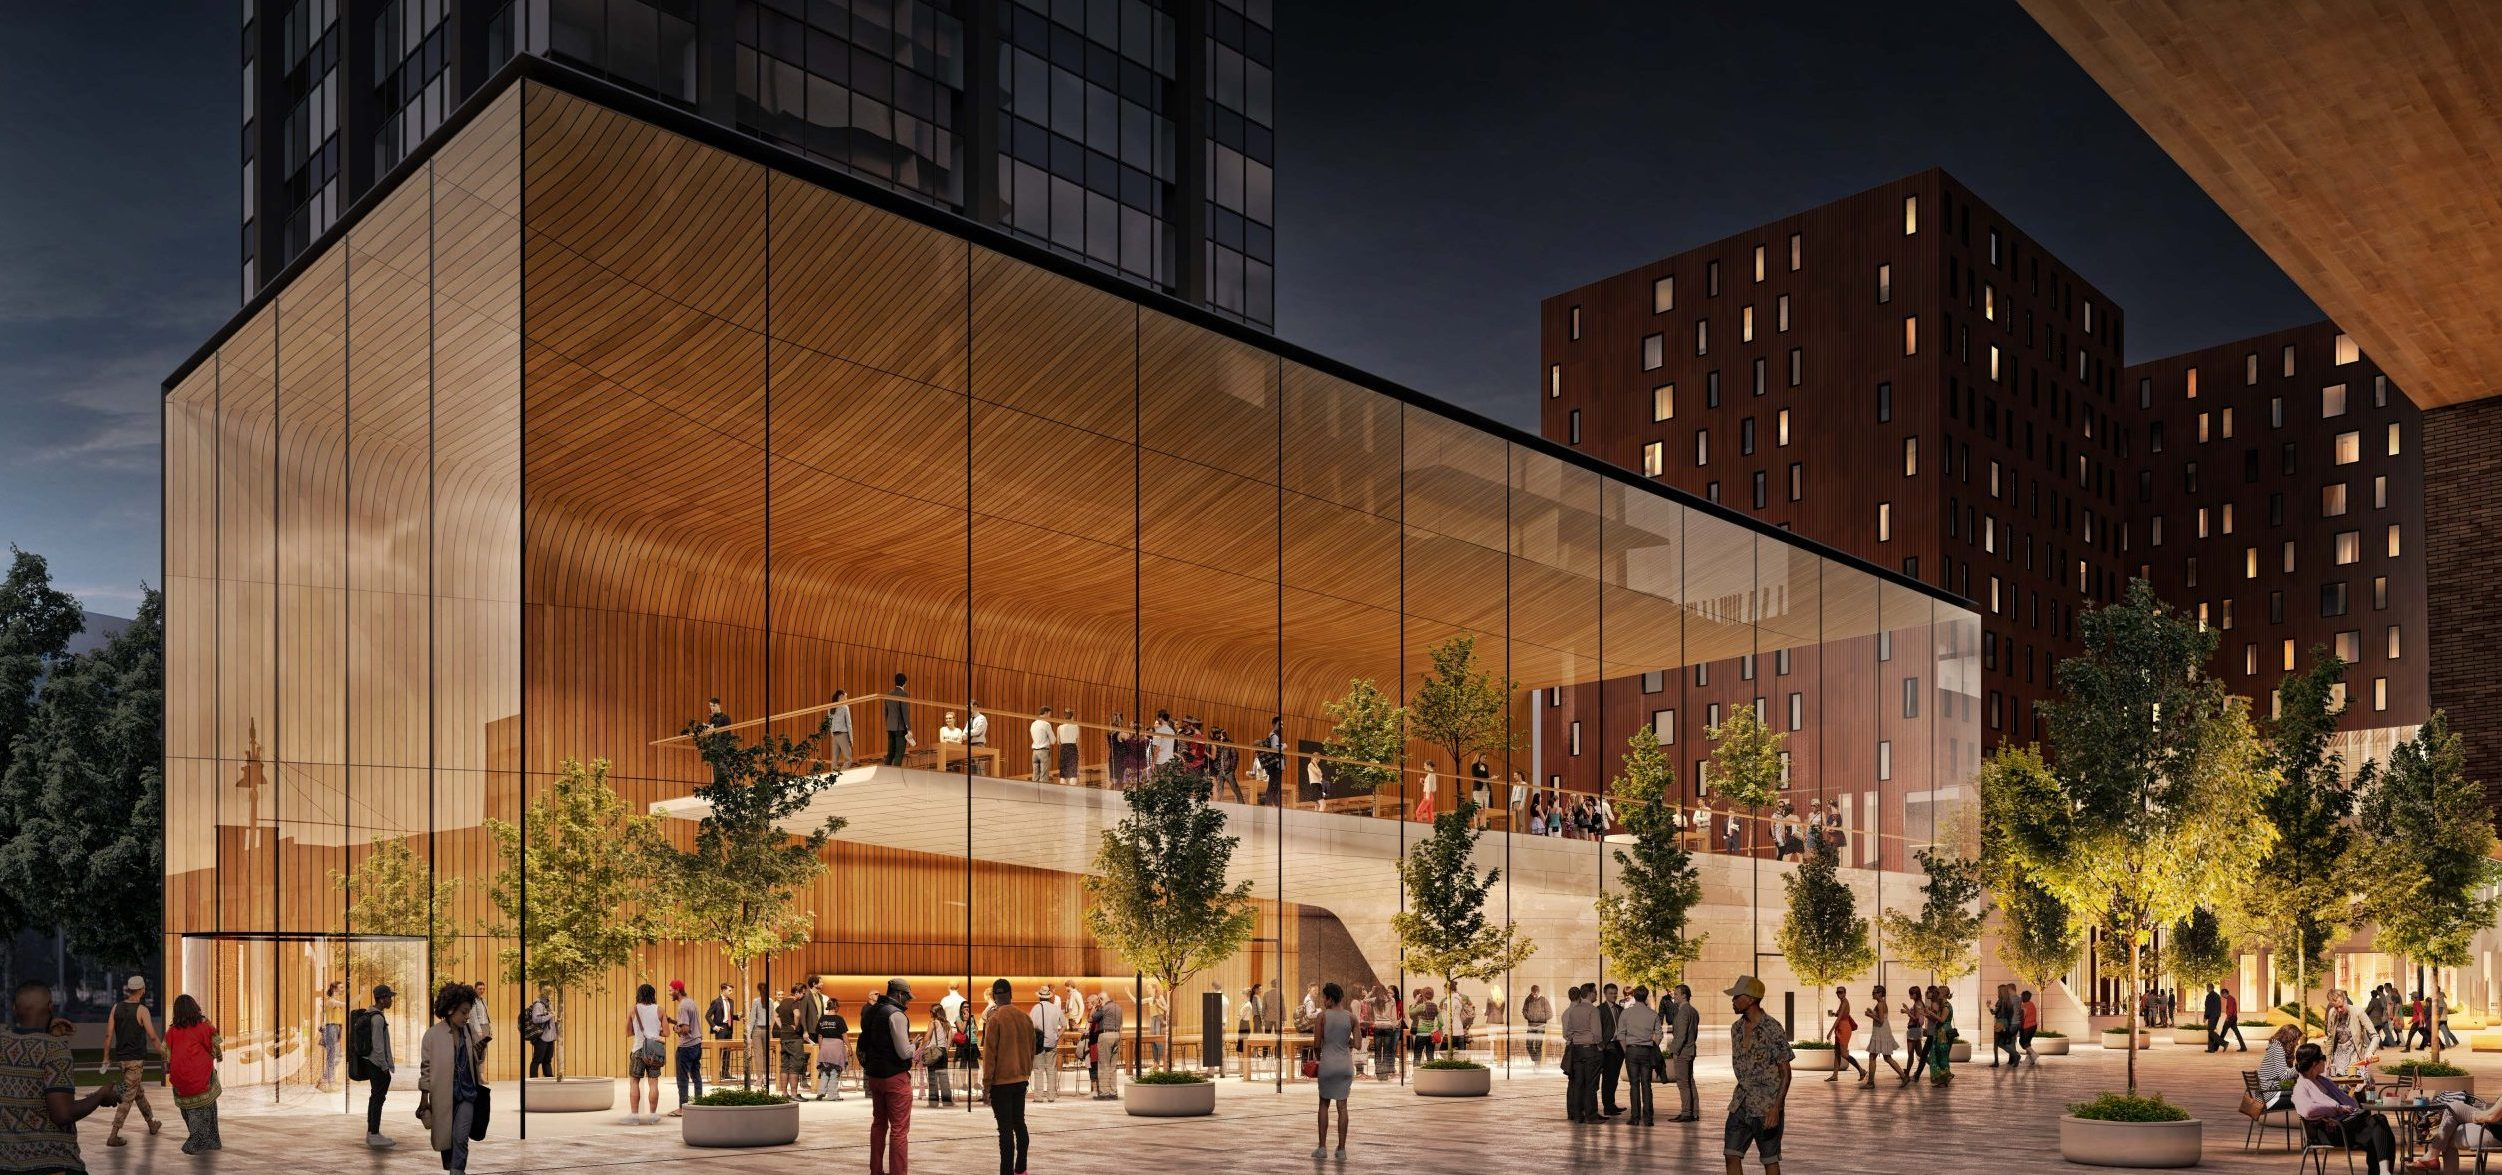 Rendering of glass retail pavilion at the Mid Mixed-Use Development Project in Detroit Michigan Architecture and Urban Design